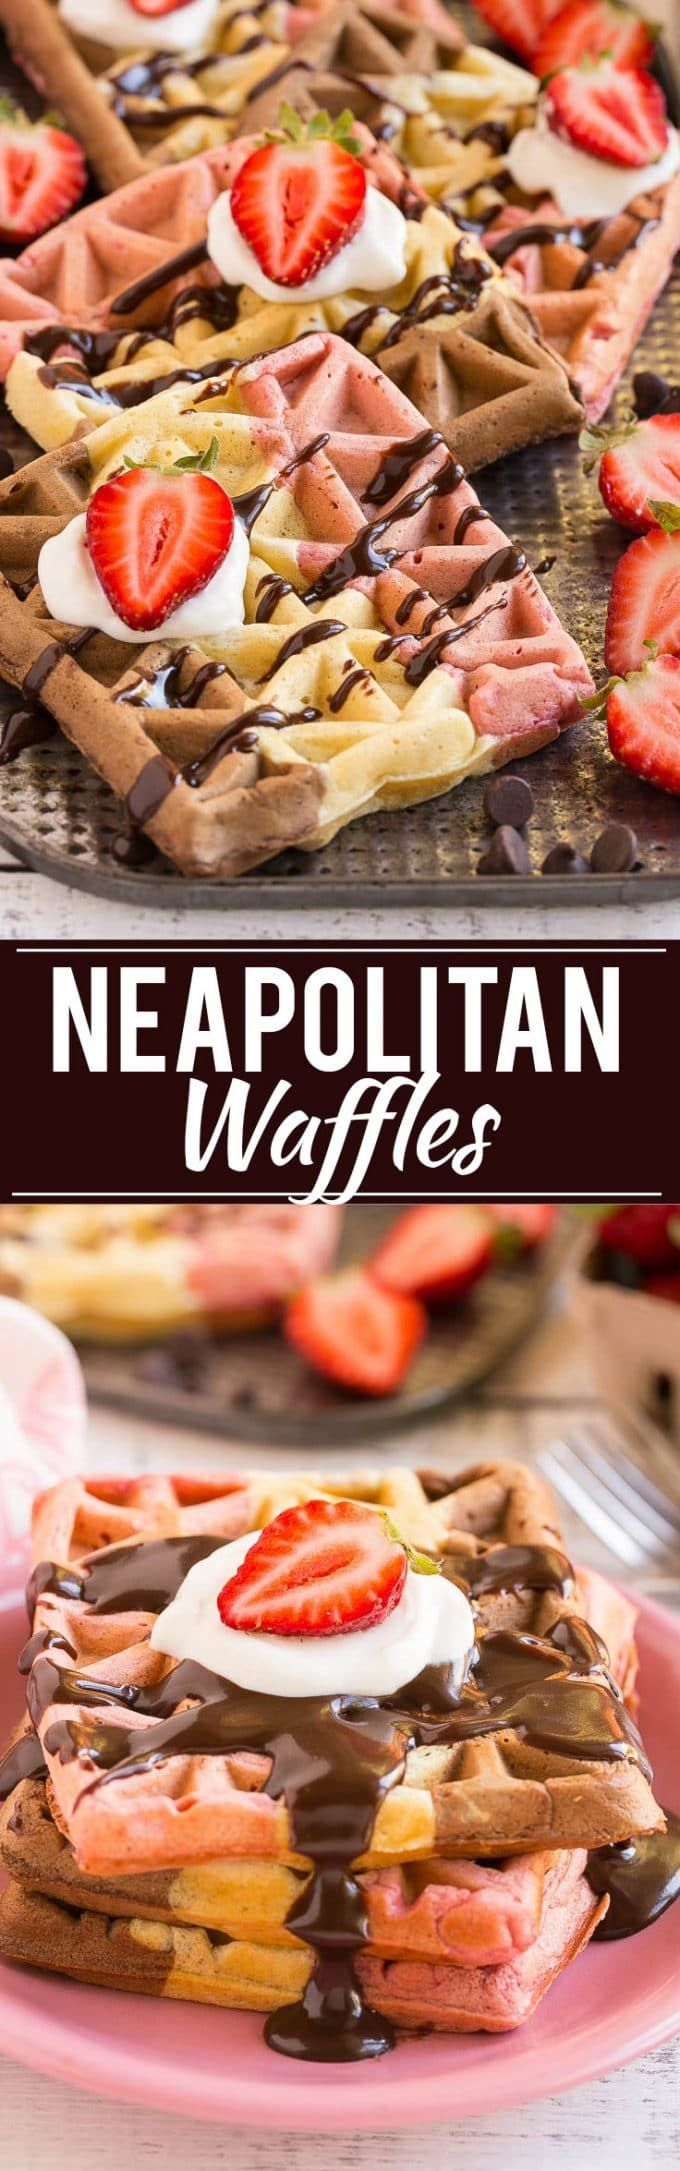 Have your favorite ice cream flavor for breakfast with this recipe for neapolitan waffles. It's one batter flavored three different ways!